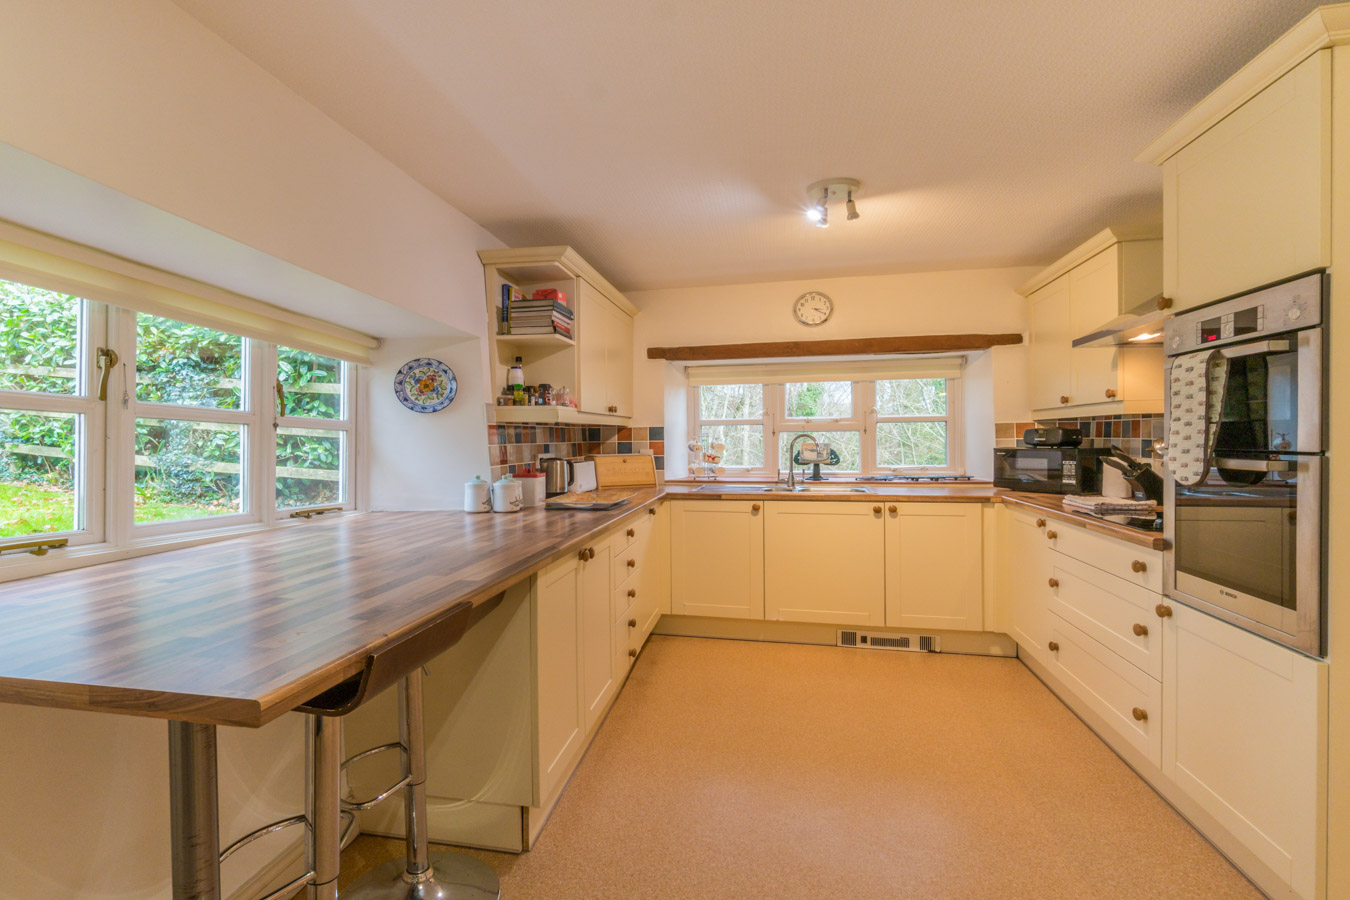 Self-Catering-Holiday-Farmhouse-West-Dorset-Nr-Charmouth-Lyme-Regis-9-guests-18